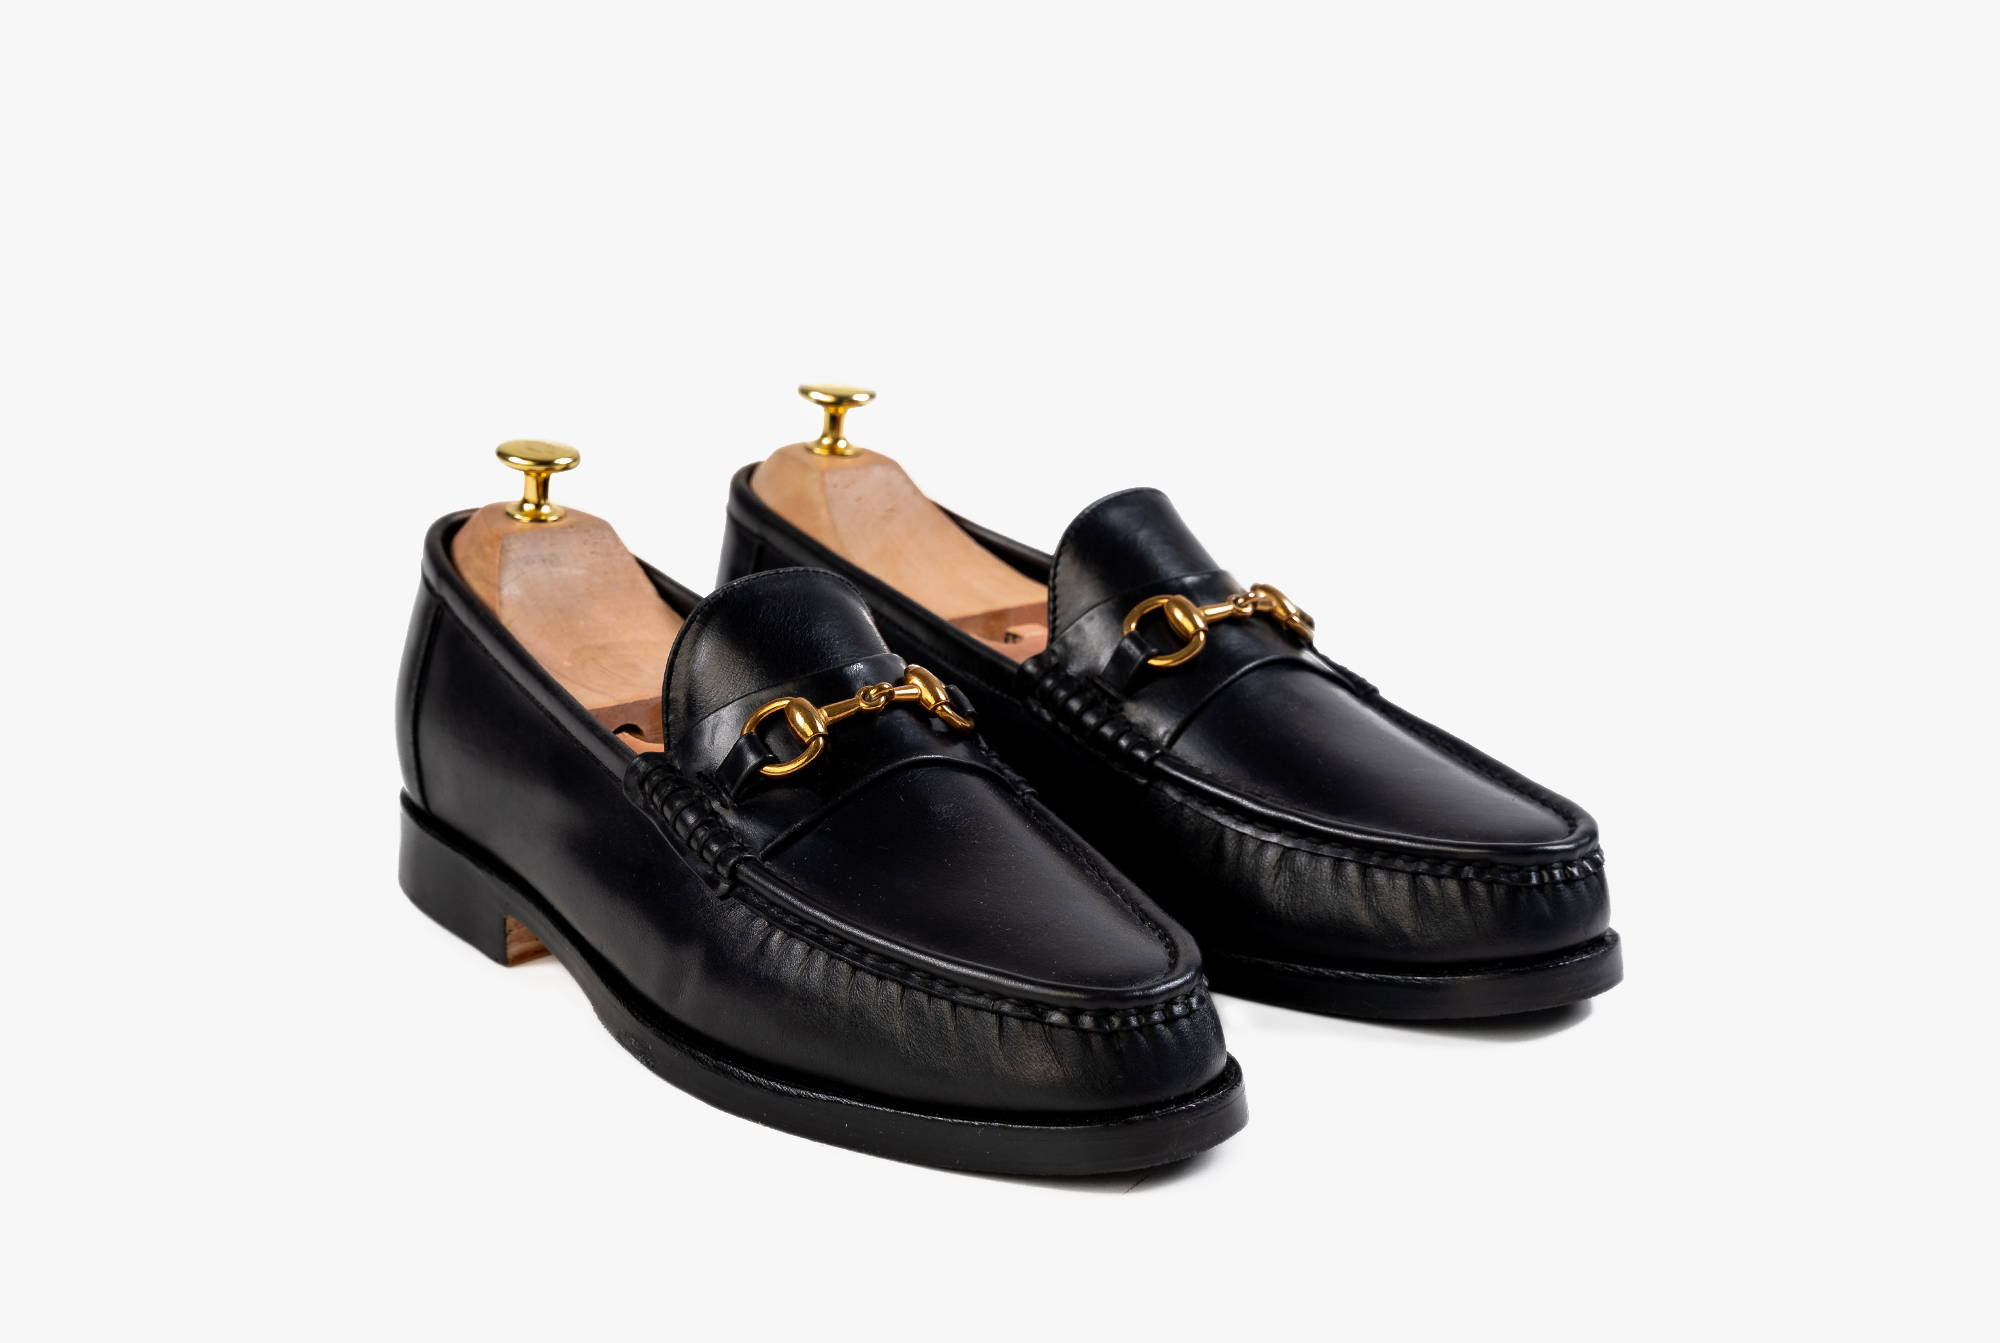 Penny Loafer Oxblood Burgundy